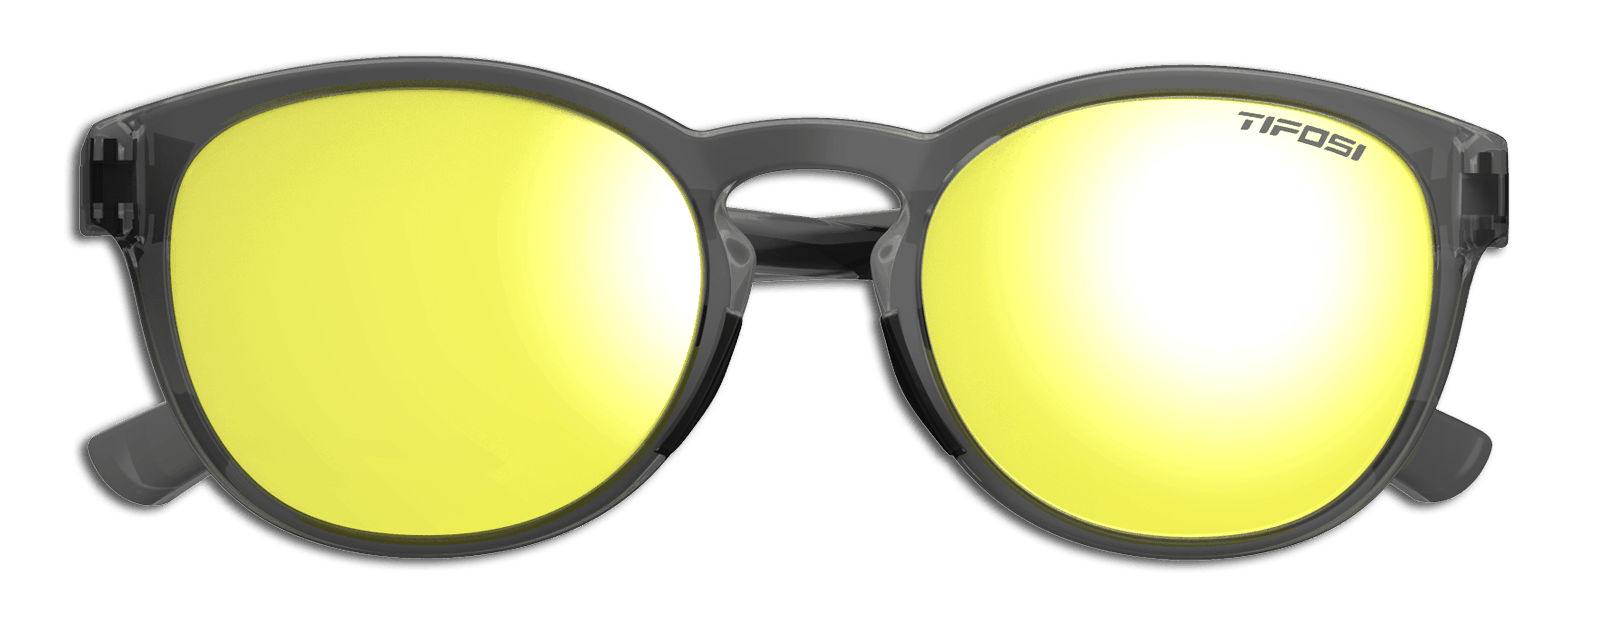 black yellow lifestyle sunglasses